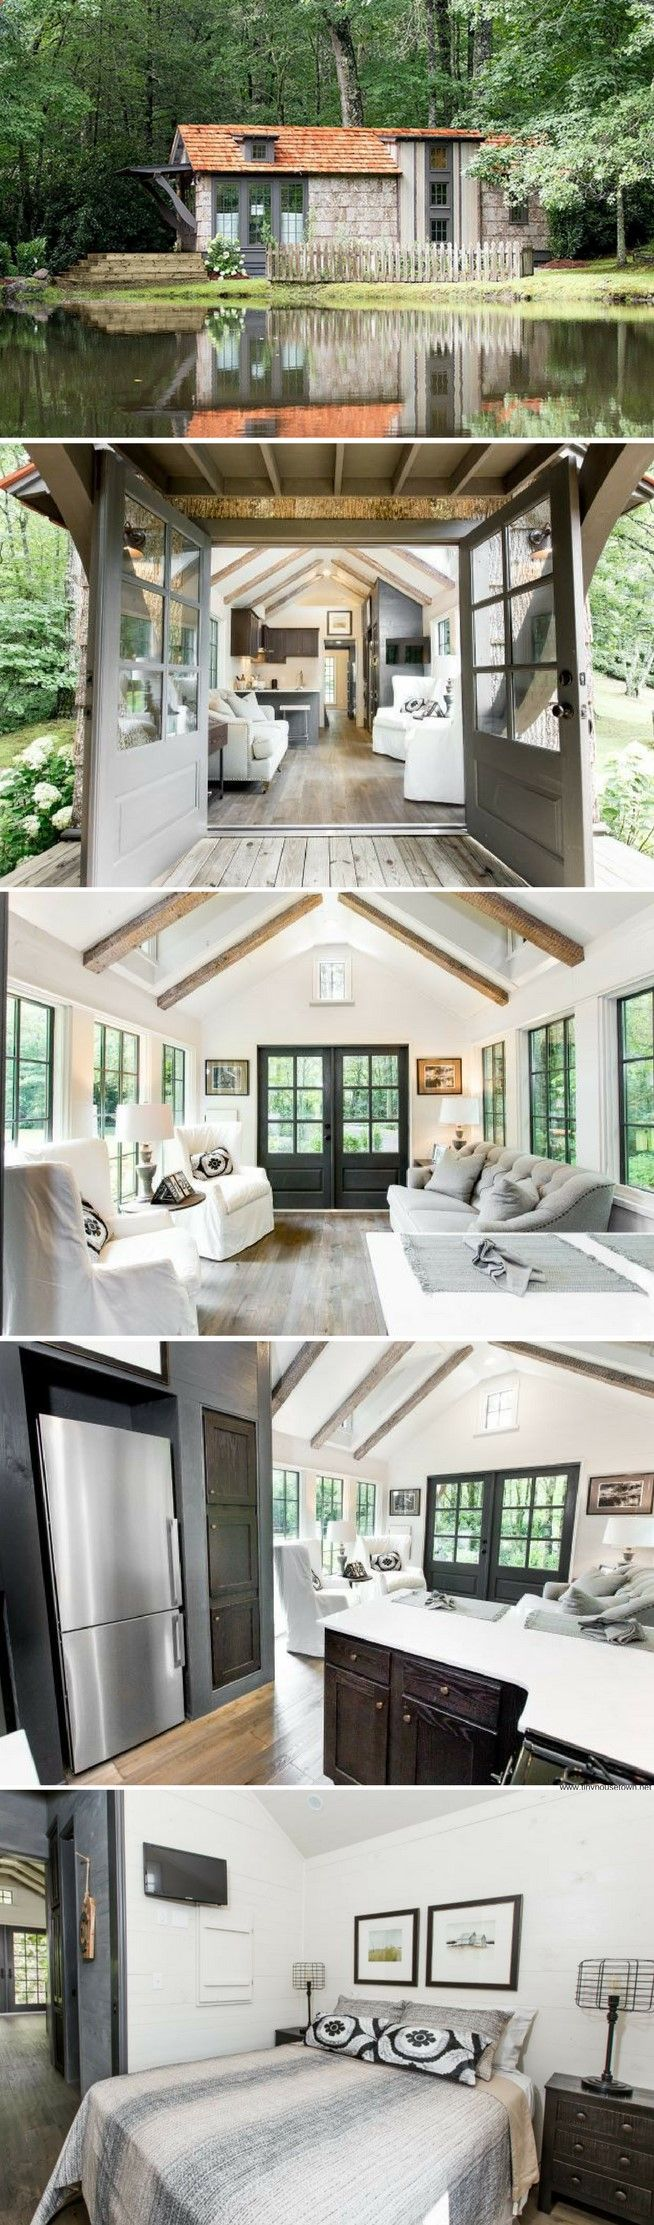 4744 best Tiny Dream Homes images on Pinterest | Small houses, Tiny ...